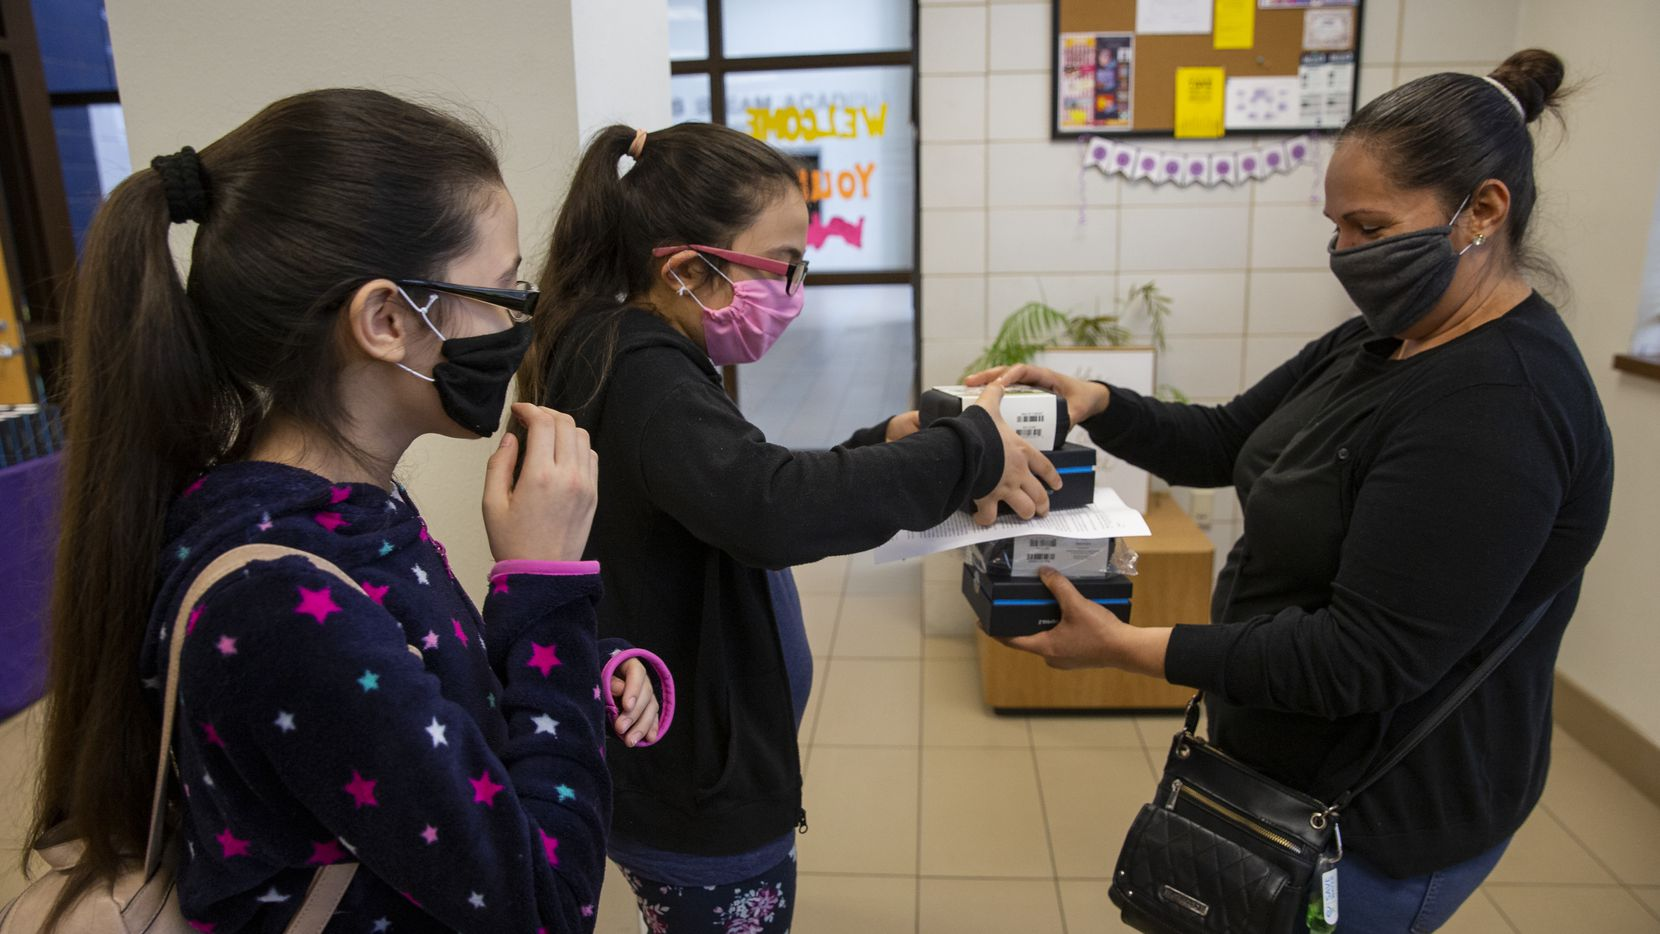 (From left) Adlemi Morales, 13, and Emeline Morales, 11, grab WiFi hotspots provided by DISD from their mom Imelda Tinajero at Young Women's STEAM Academy at Balch Springs on April 24, 2020 in Dallas. The girls were using their neighbors WIFI to complete homework.